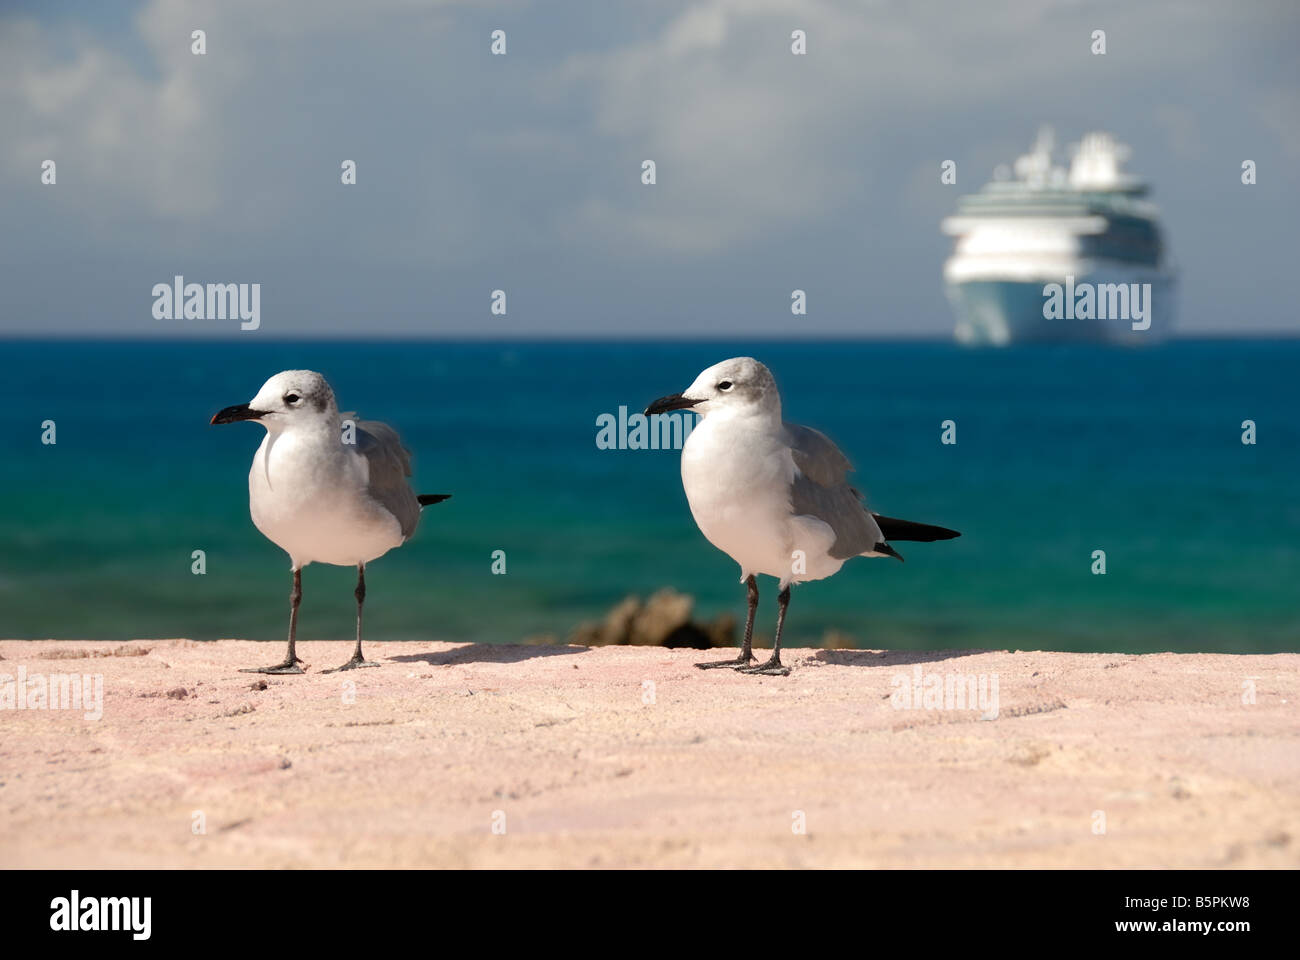 Two seagulls are in the foreground of The Royal Caribbean ship Majesty of the Seas, tendered at Little Stirrup Cay, - Stock Image